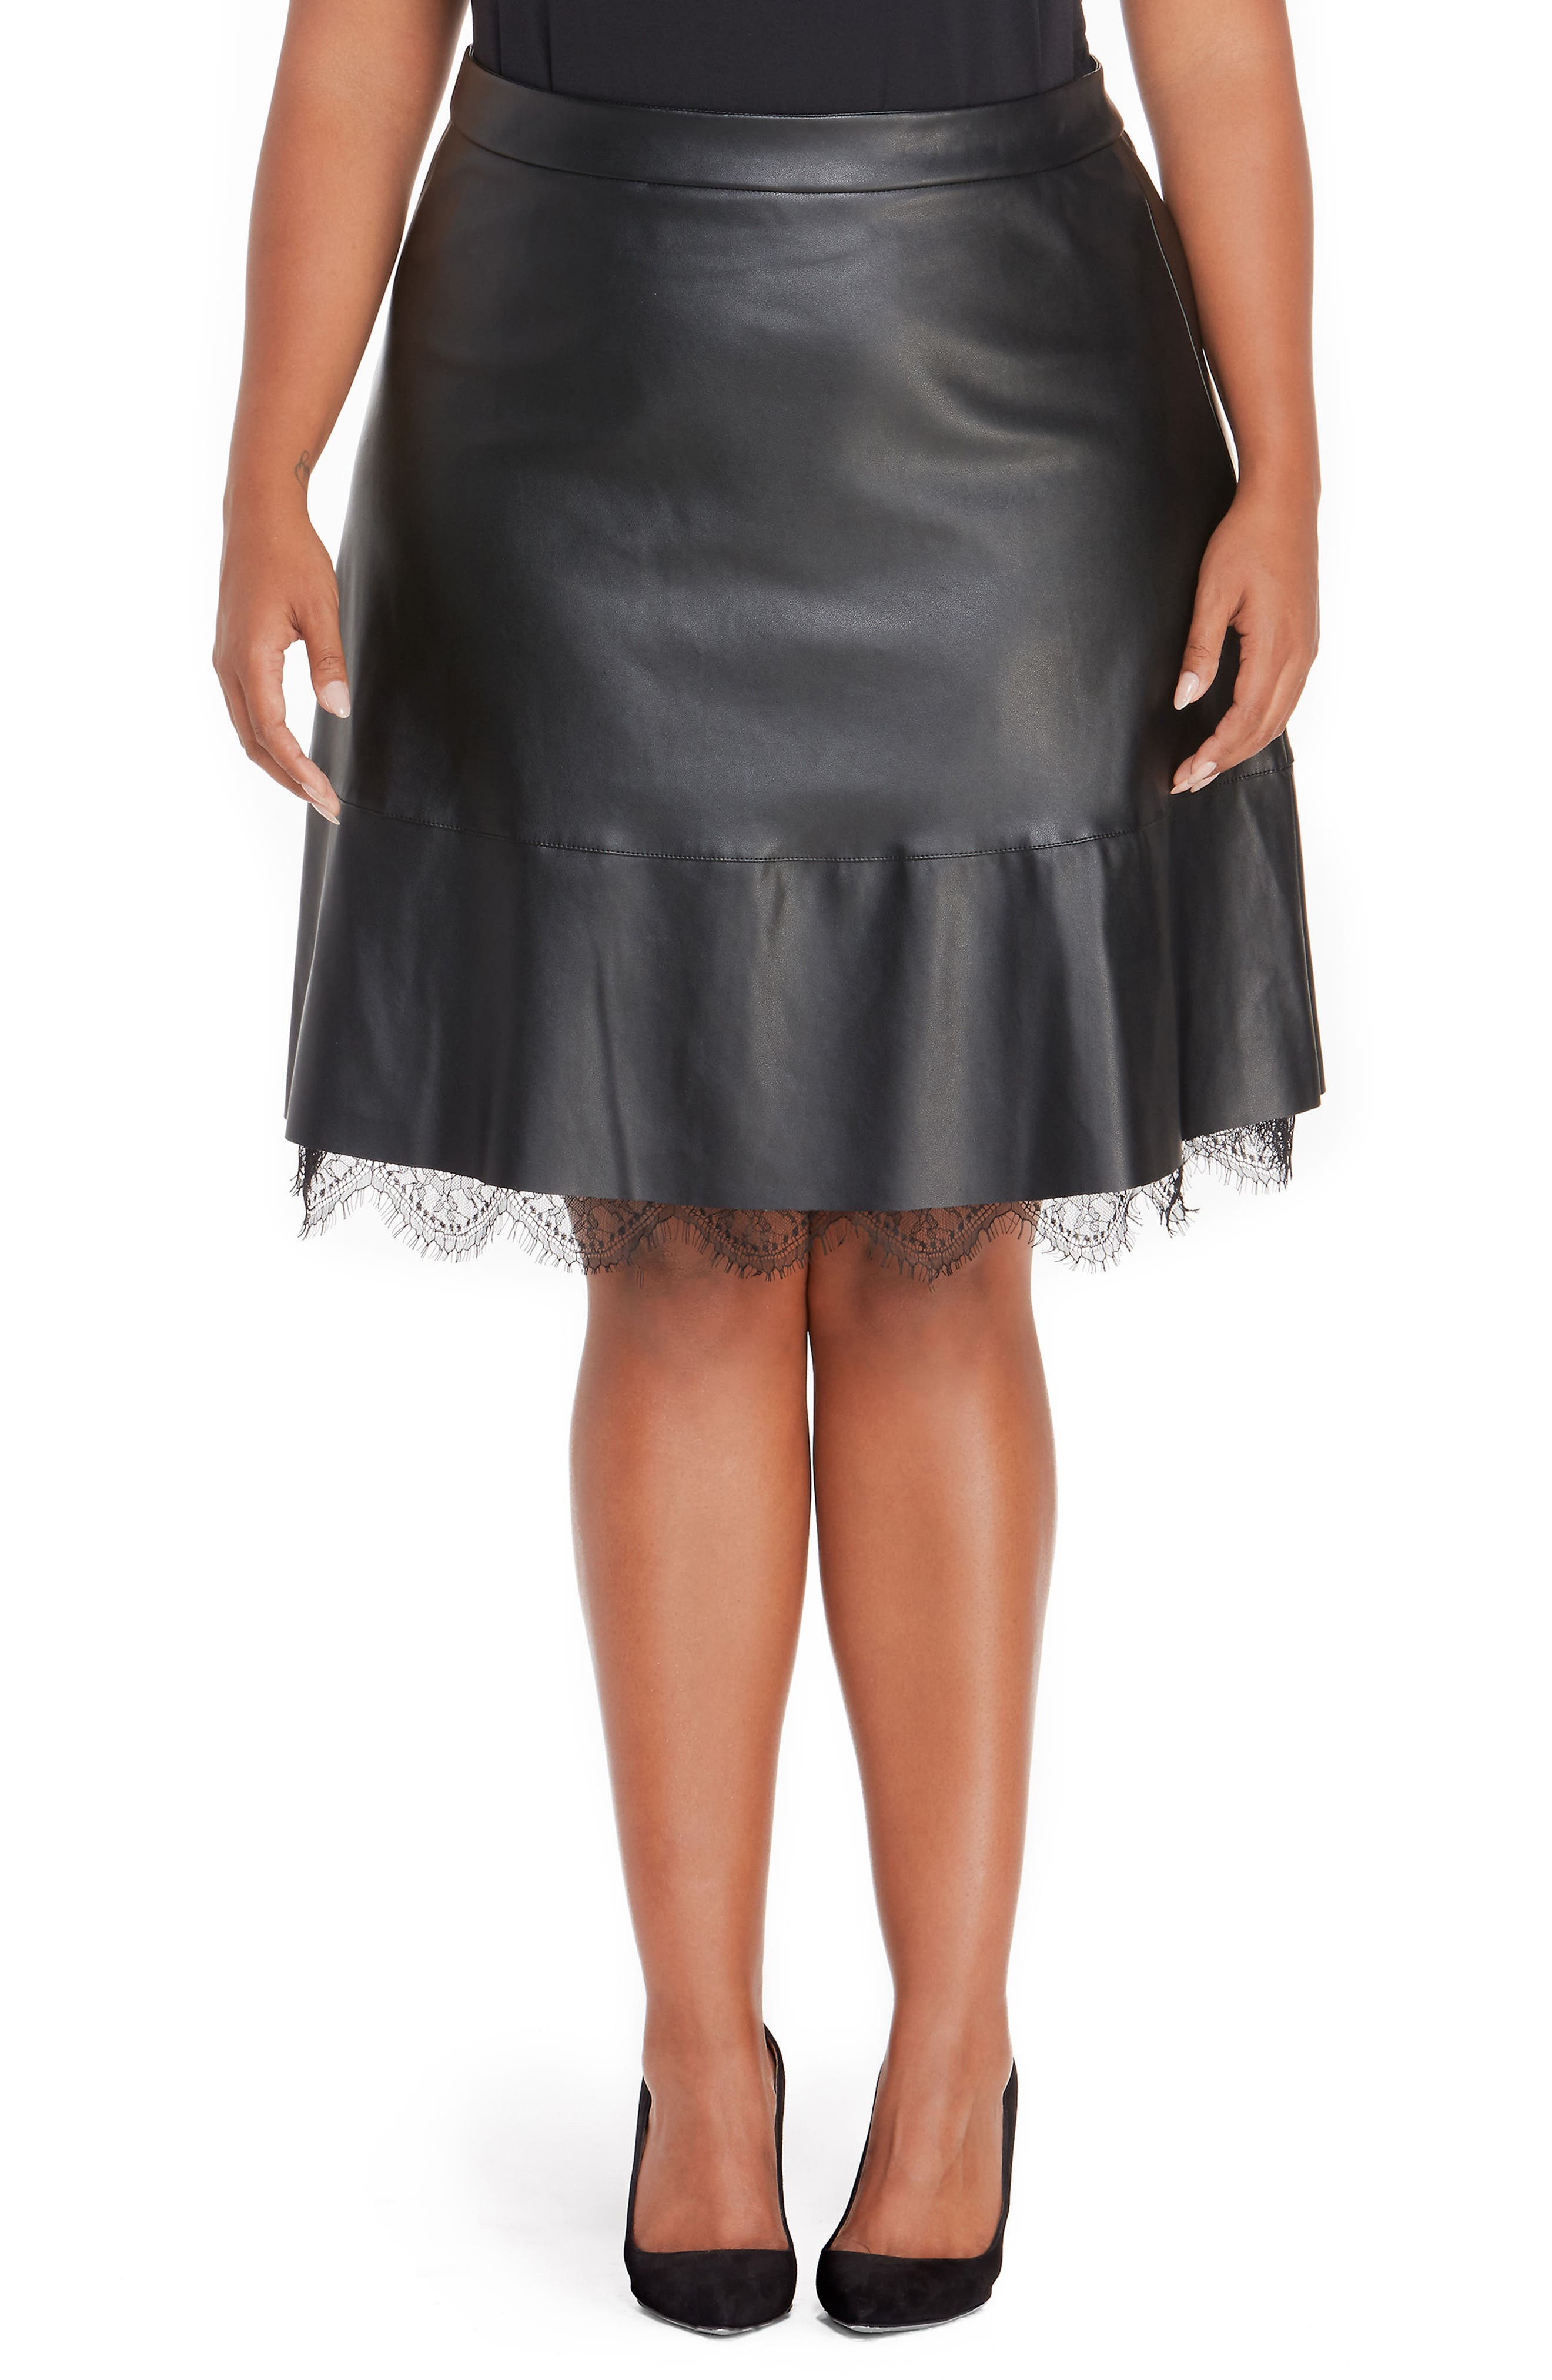 REBEL WILSON X ANGELS Faux Leather Pleated Skirt with Lace